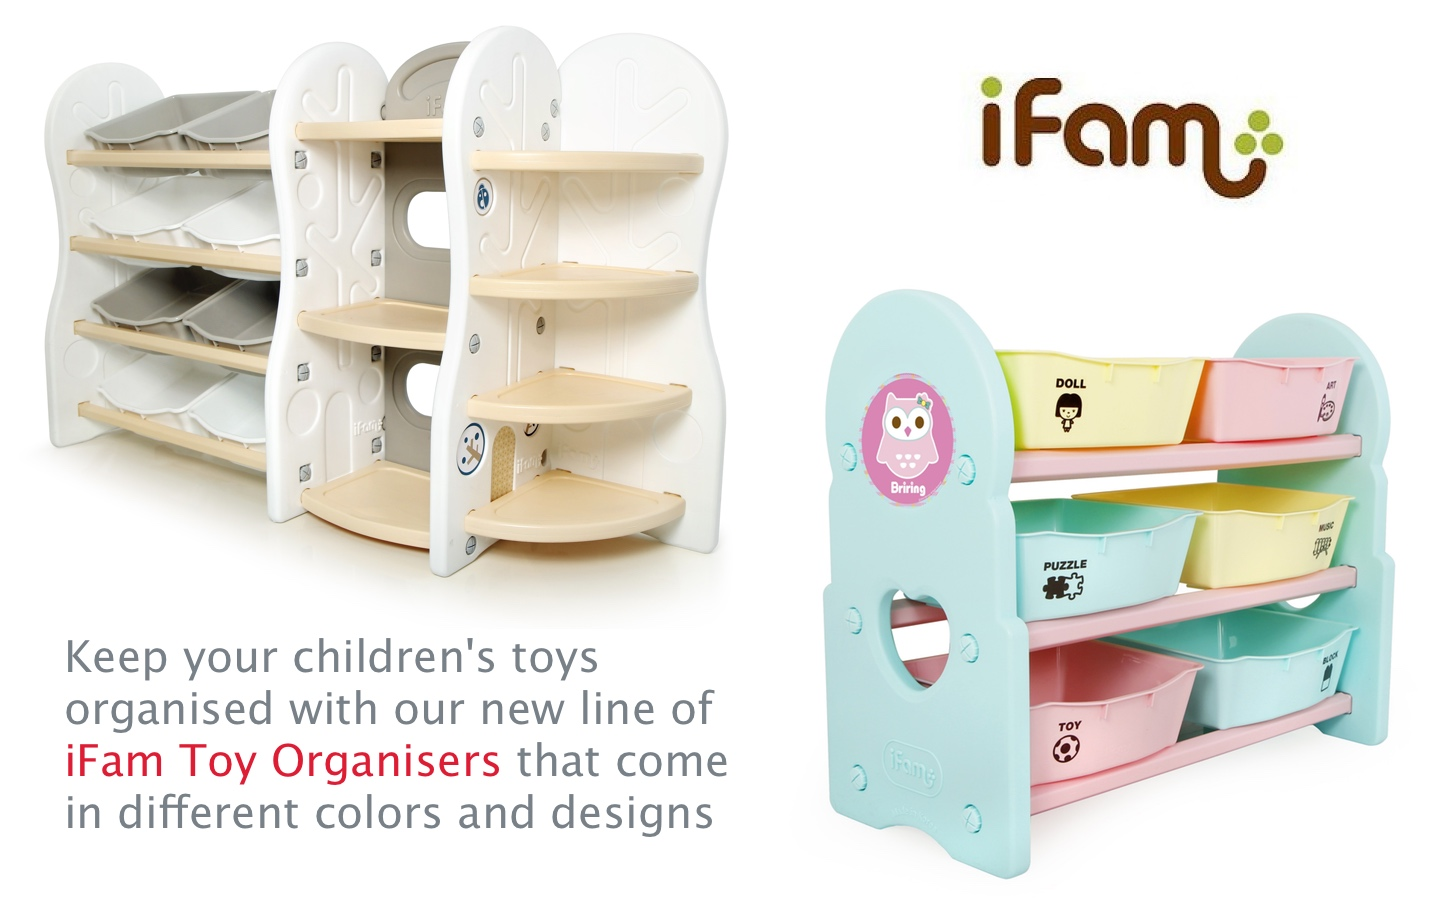 Ifam Toy Organisers